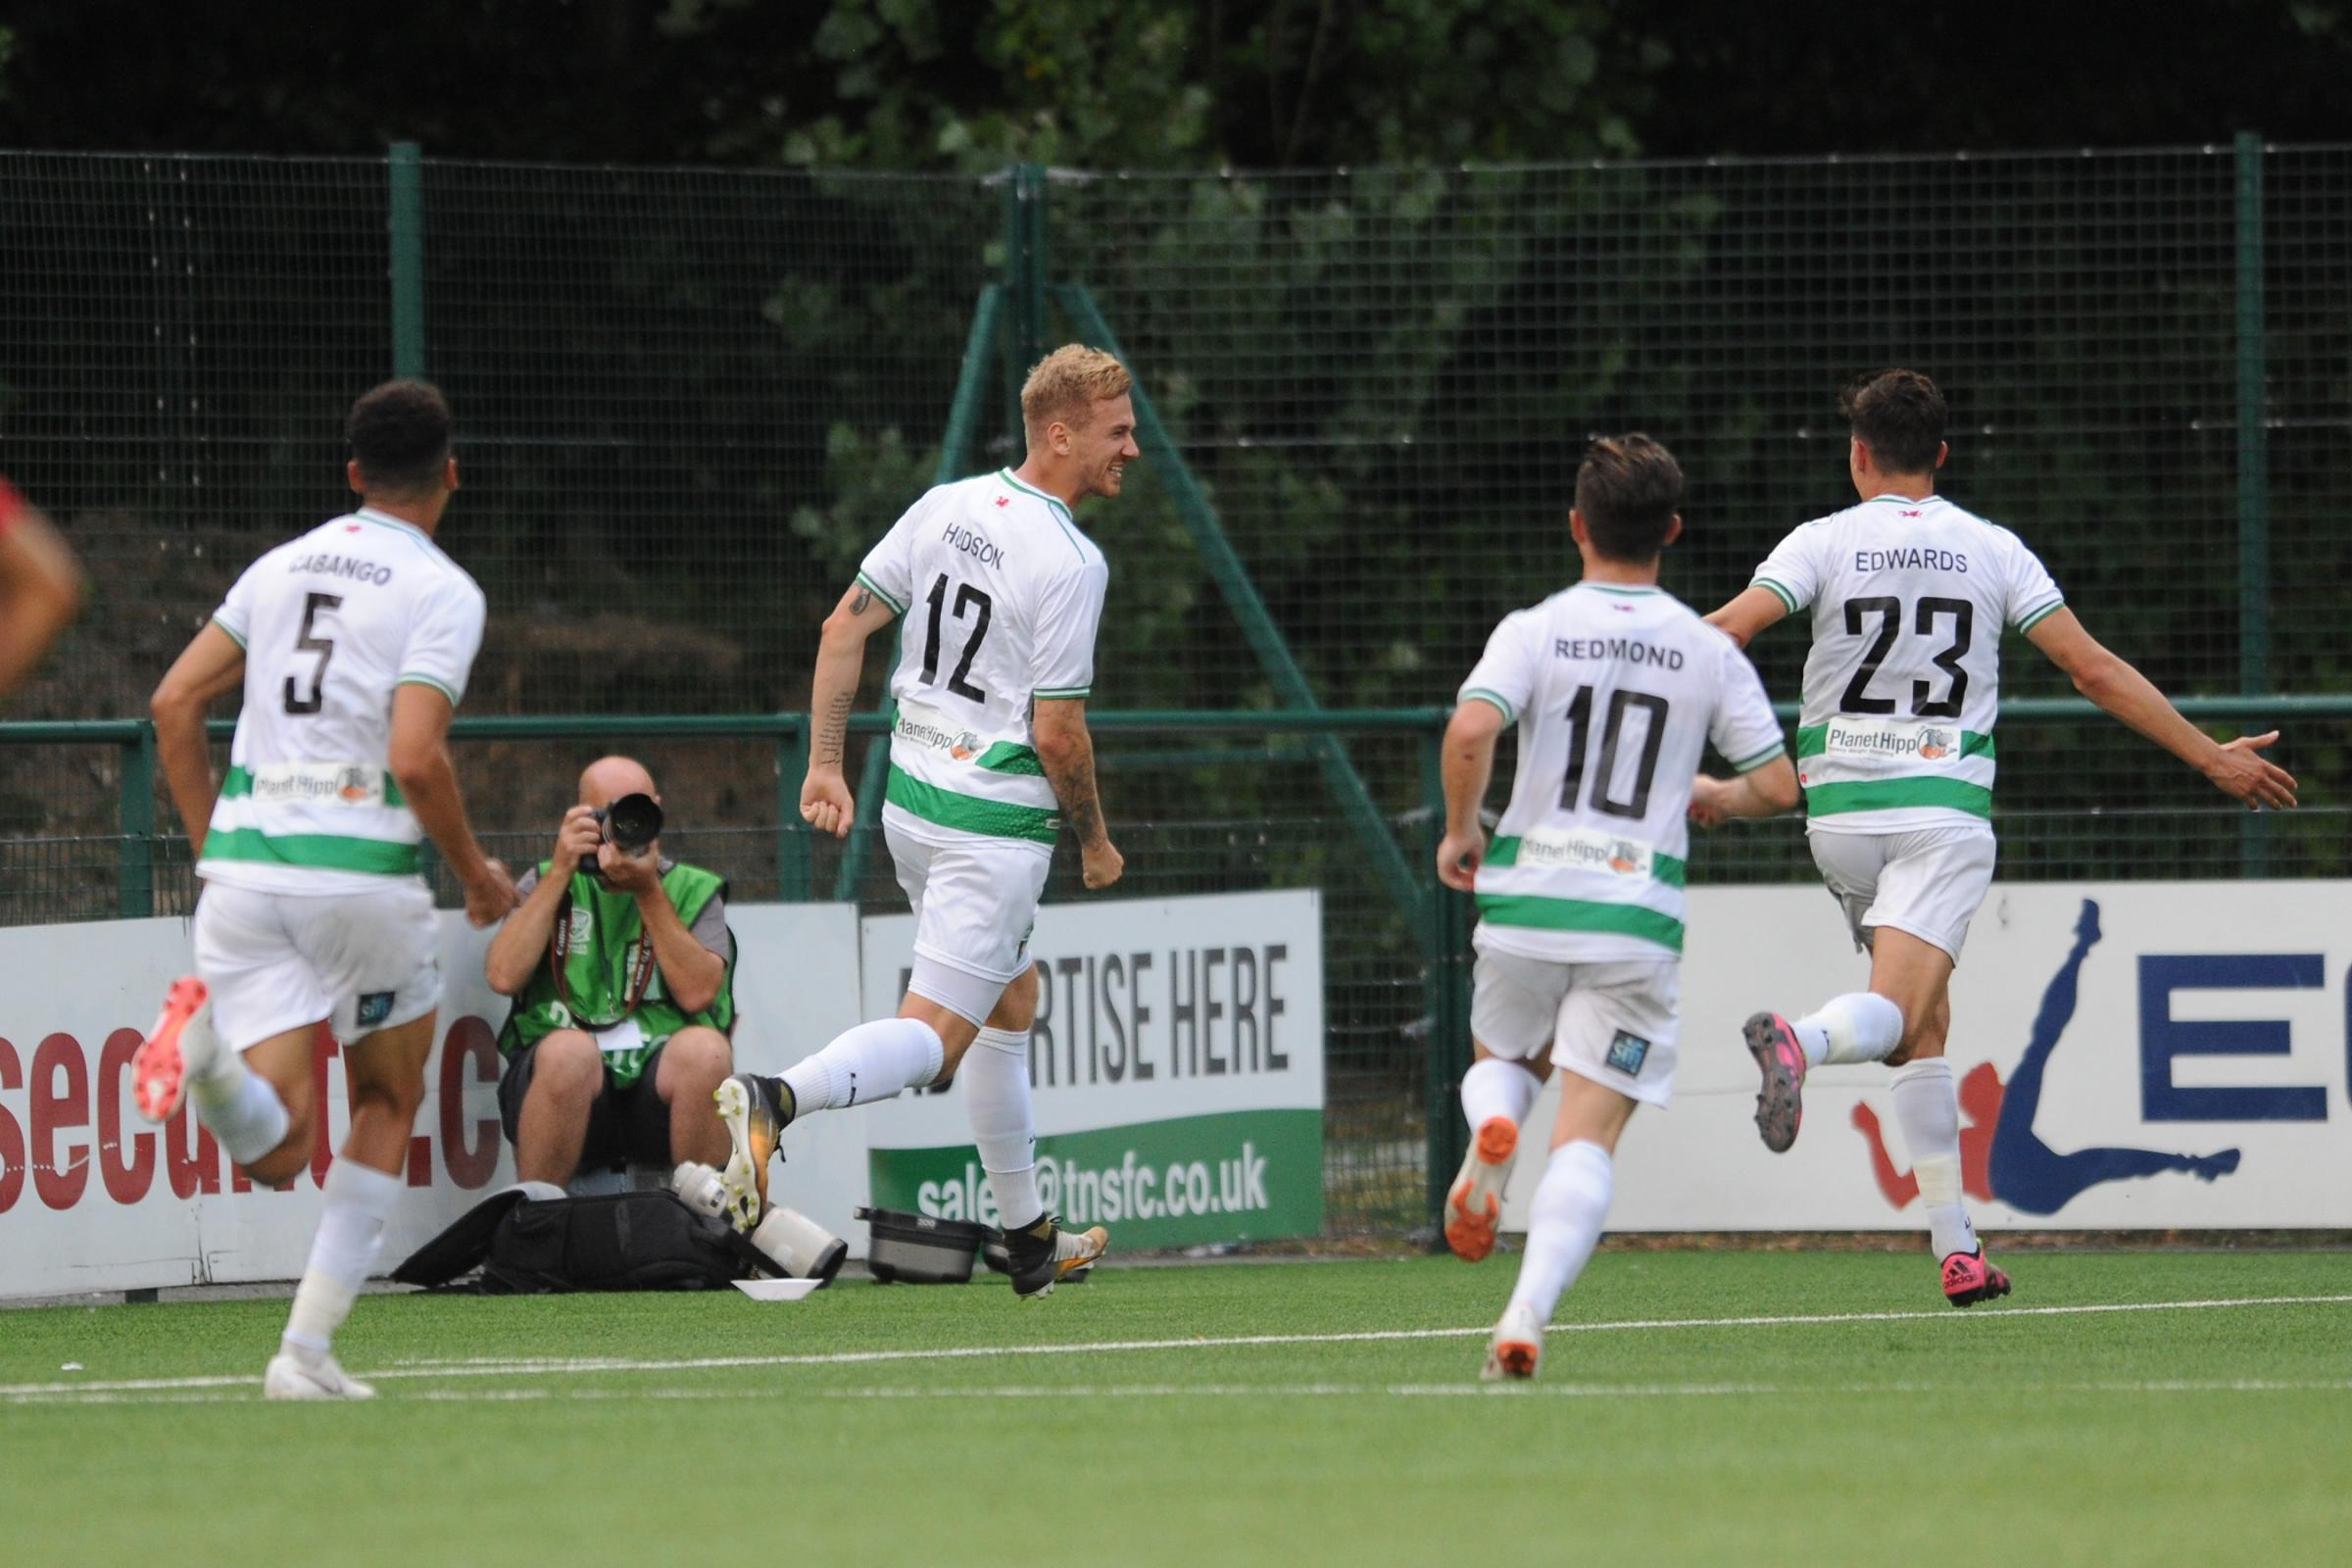 Blaine Hudson scores to make it 2-1 to TNS in the Europa League match against Lincoln Red Imps